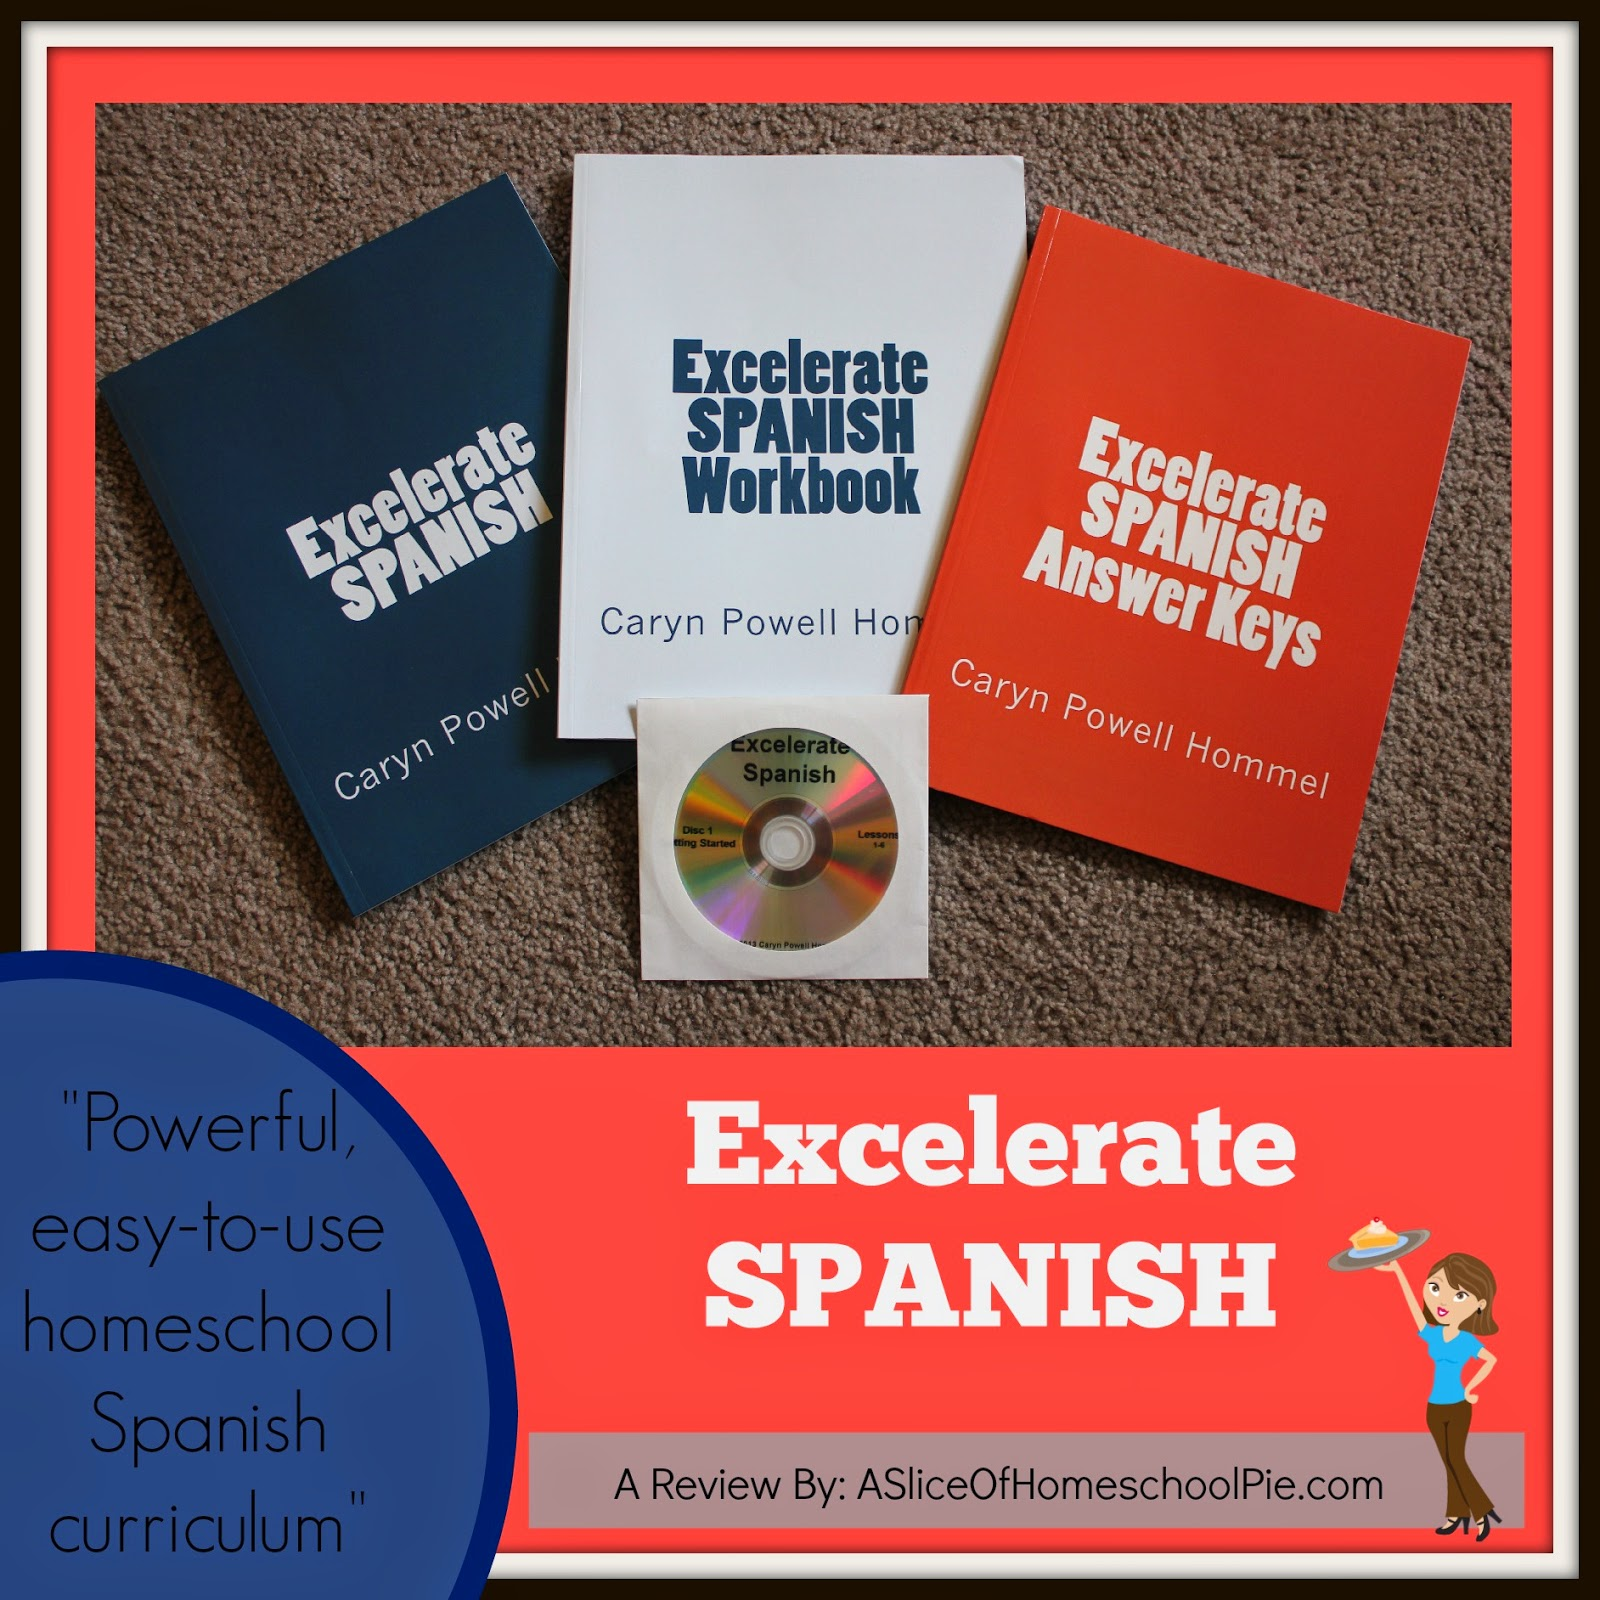 Excelerate Spanish - Review by ASliceOfHomeschoolPie.com